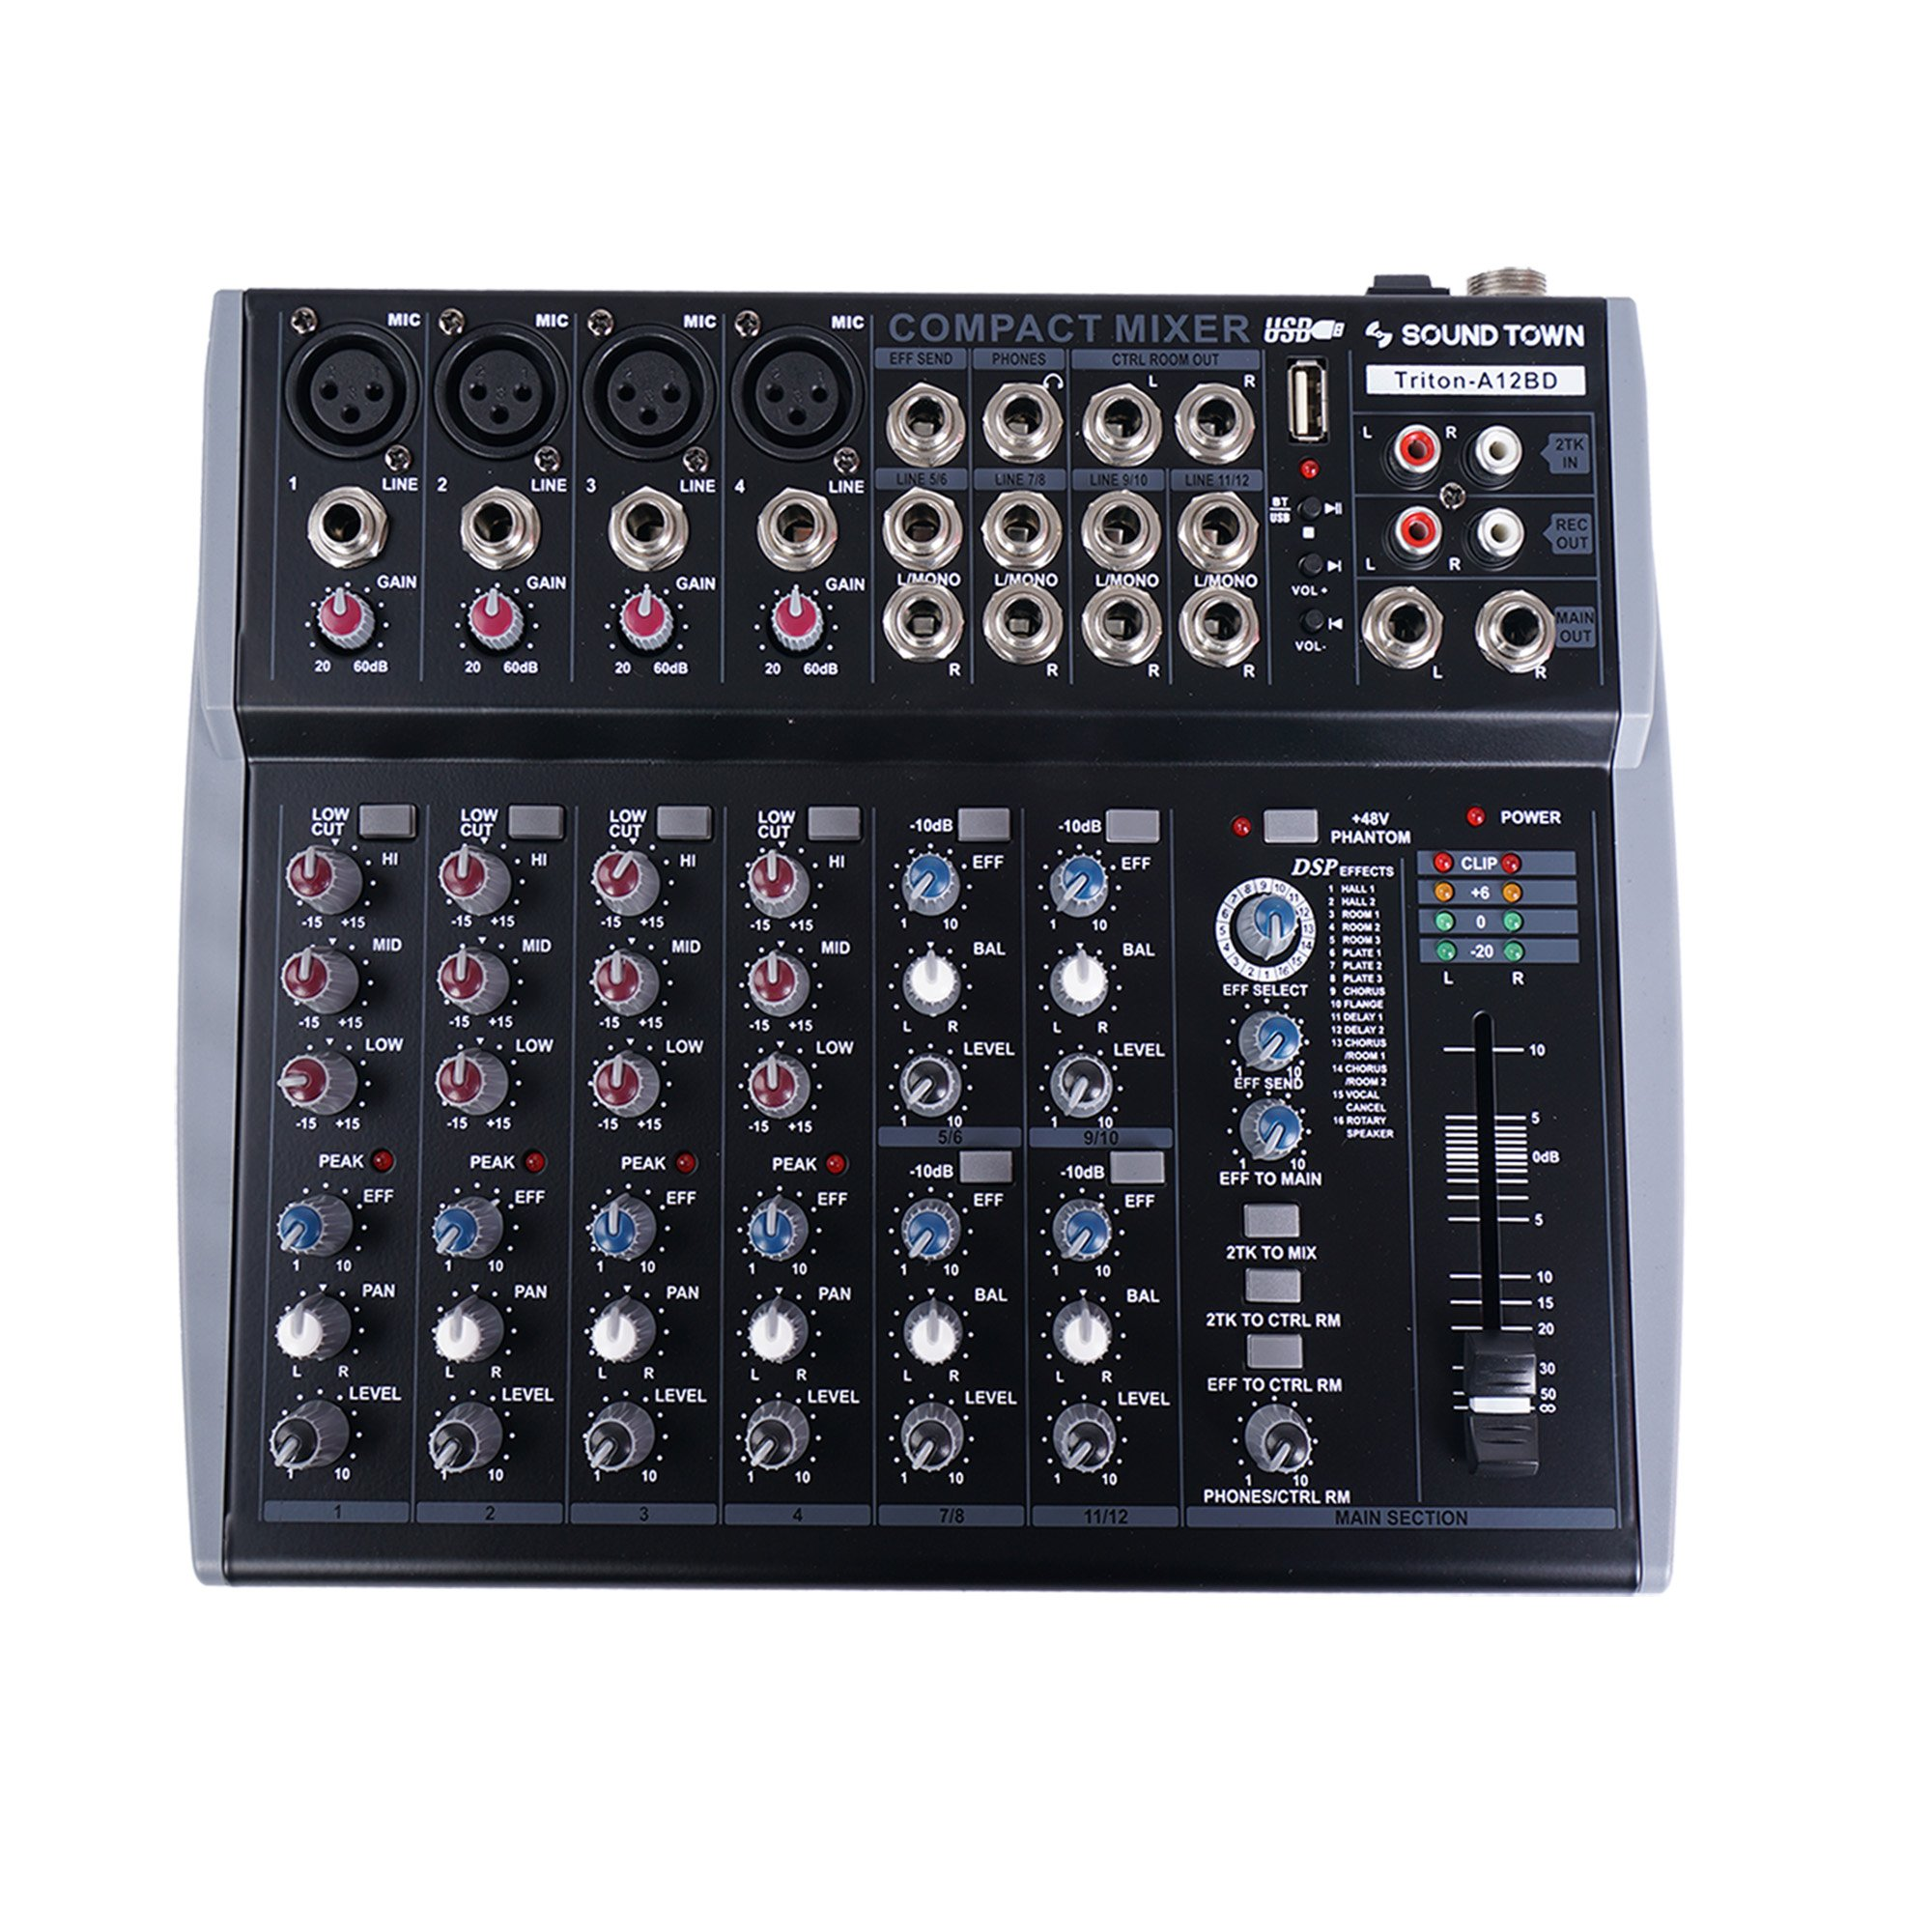 Sound Town Professional 12-Channel Audio Mixer with USB Interface, Bluetooth and DSP (TRITON-A12BD) by Sound Town